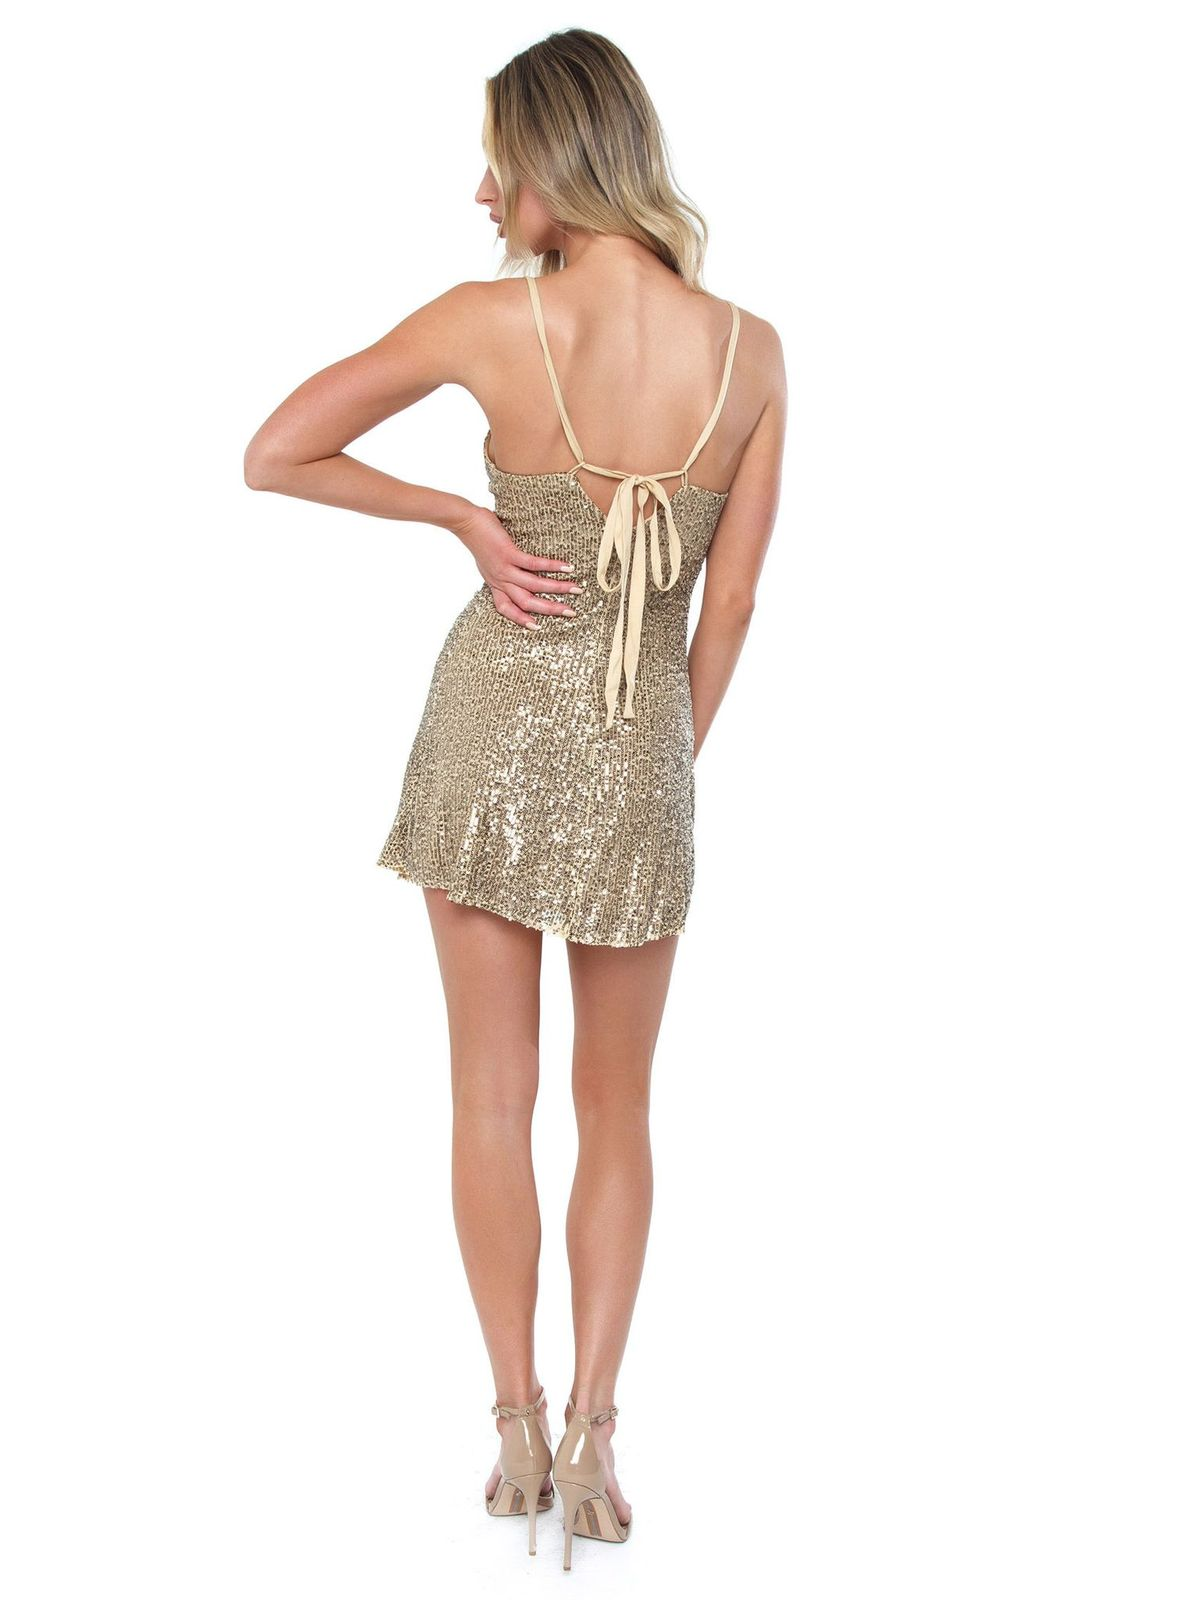 Women wearing a dress rental from Free People called Gold Rush Slip